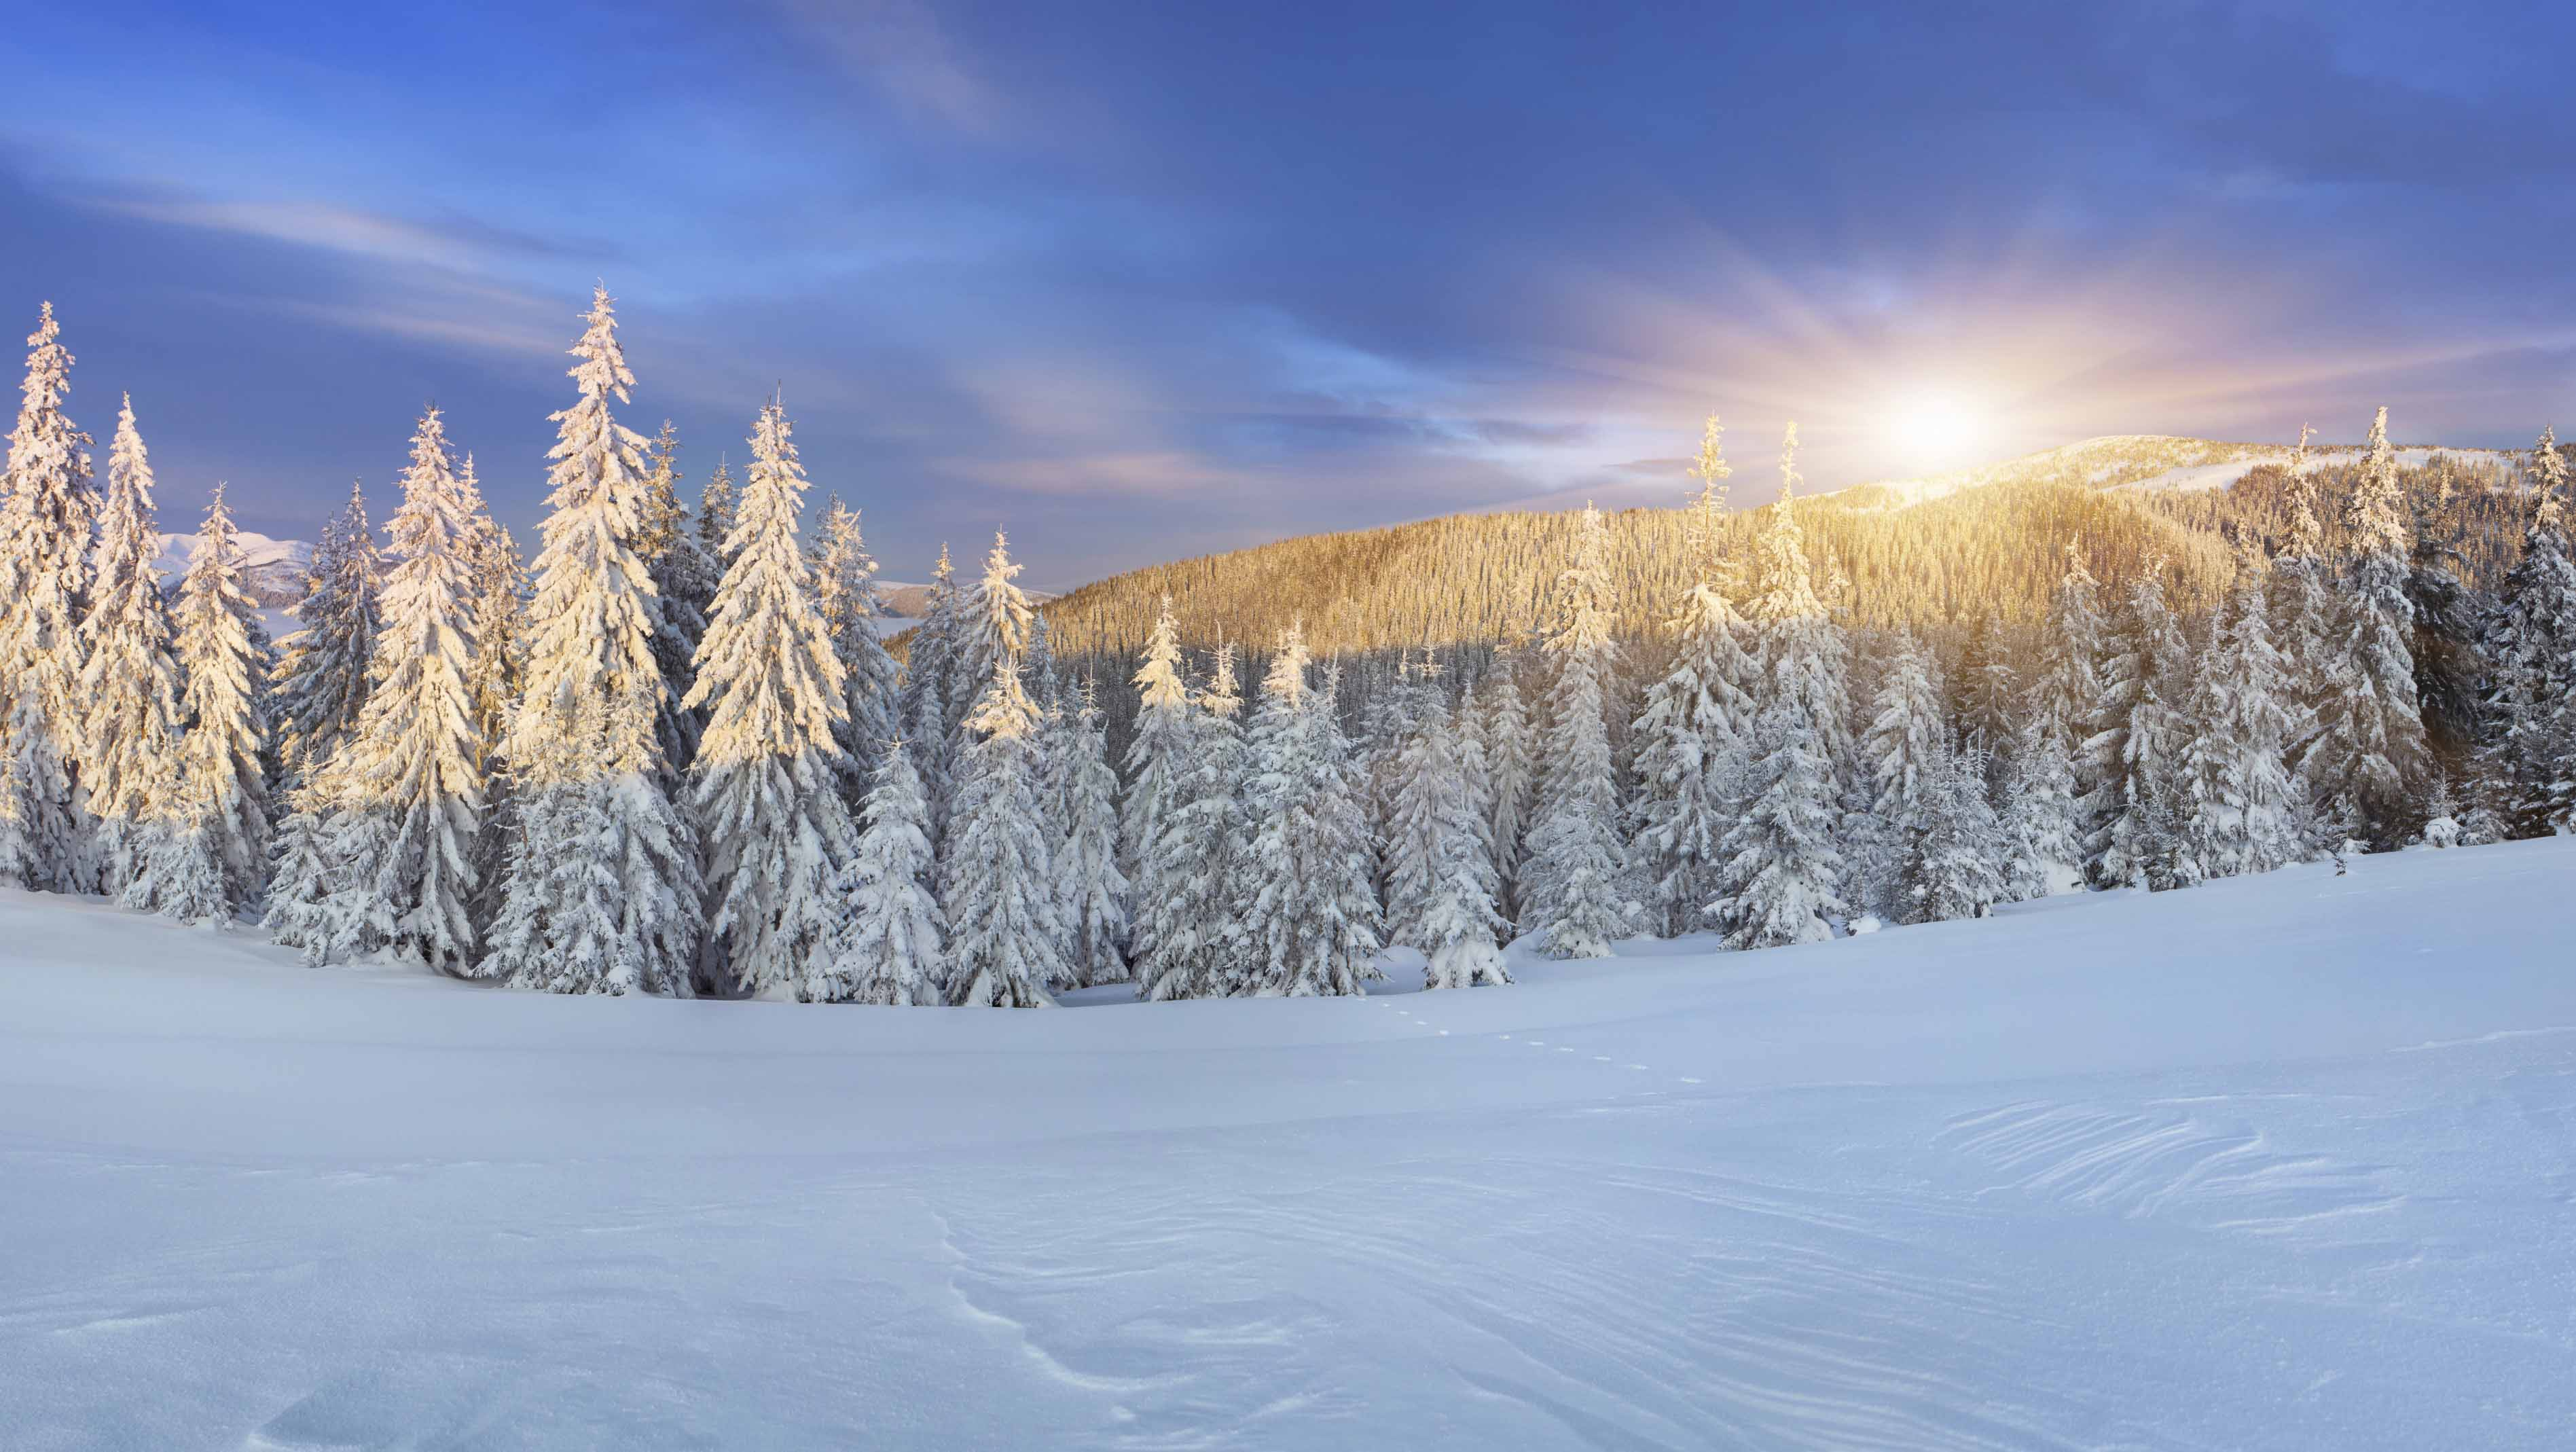 Snowy trees in the winter with sun rising